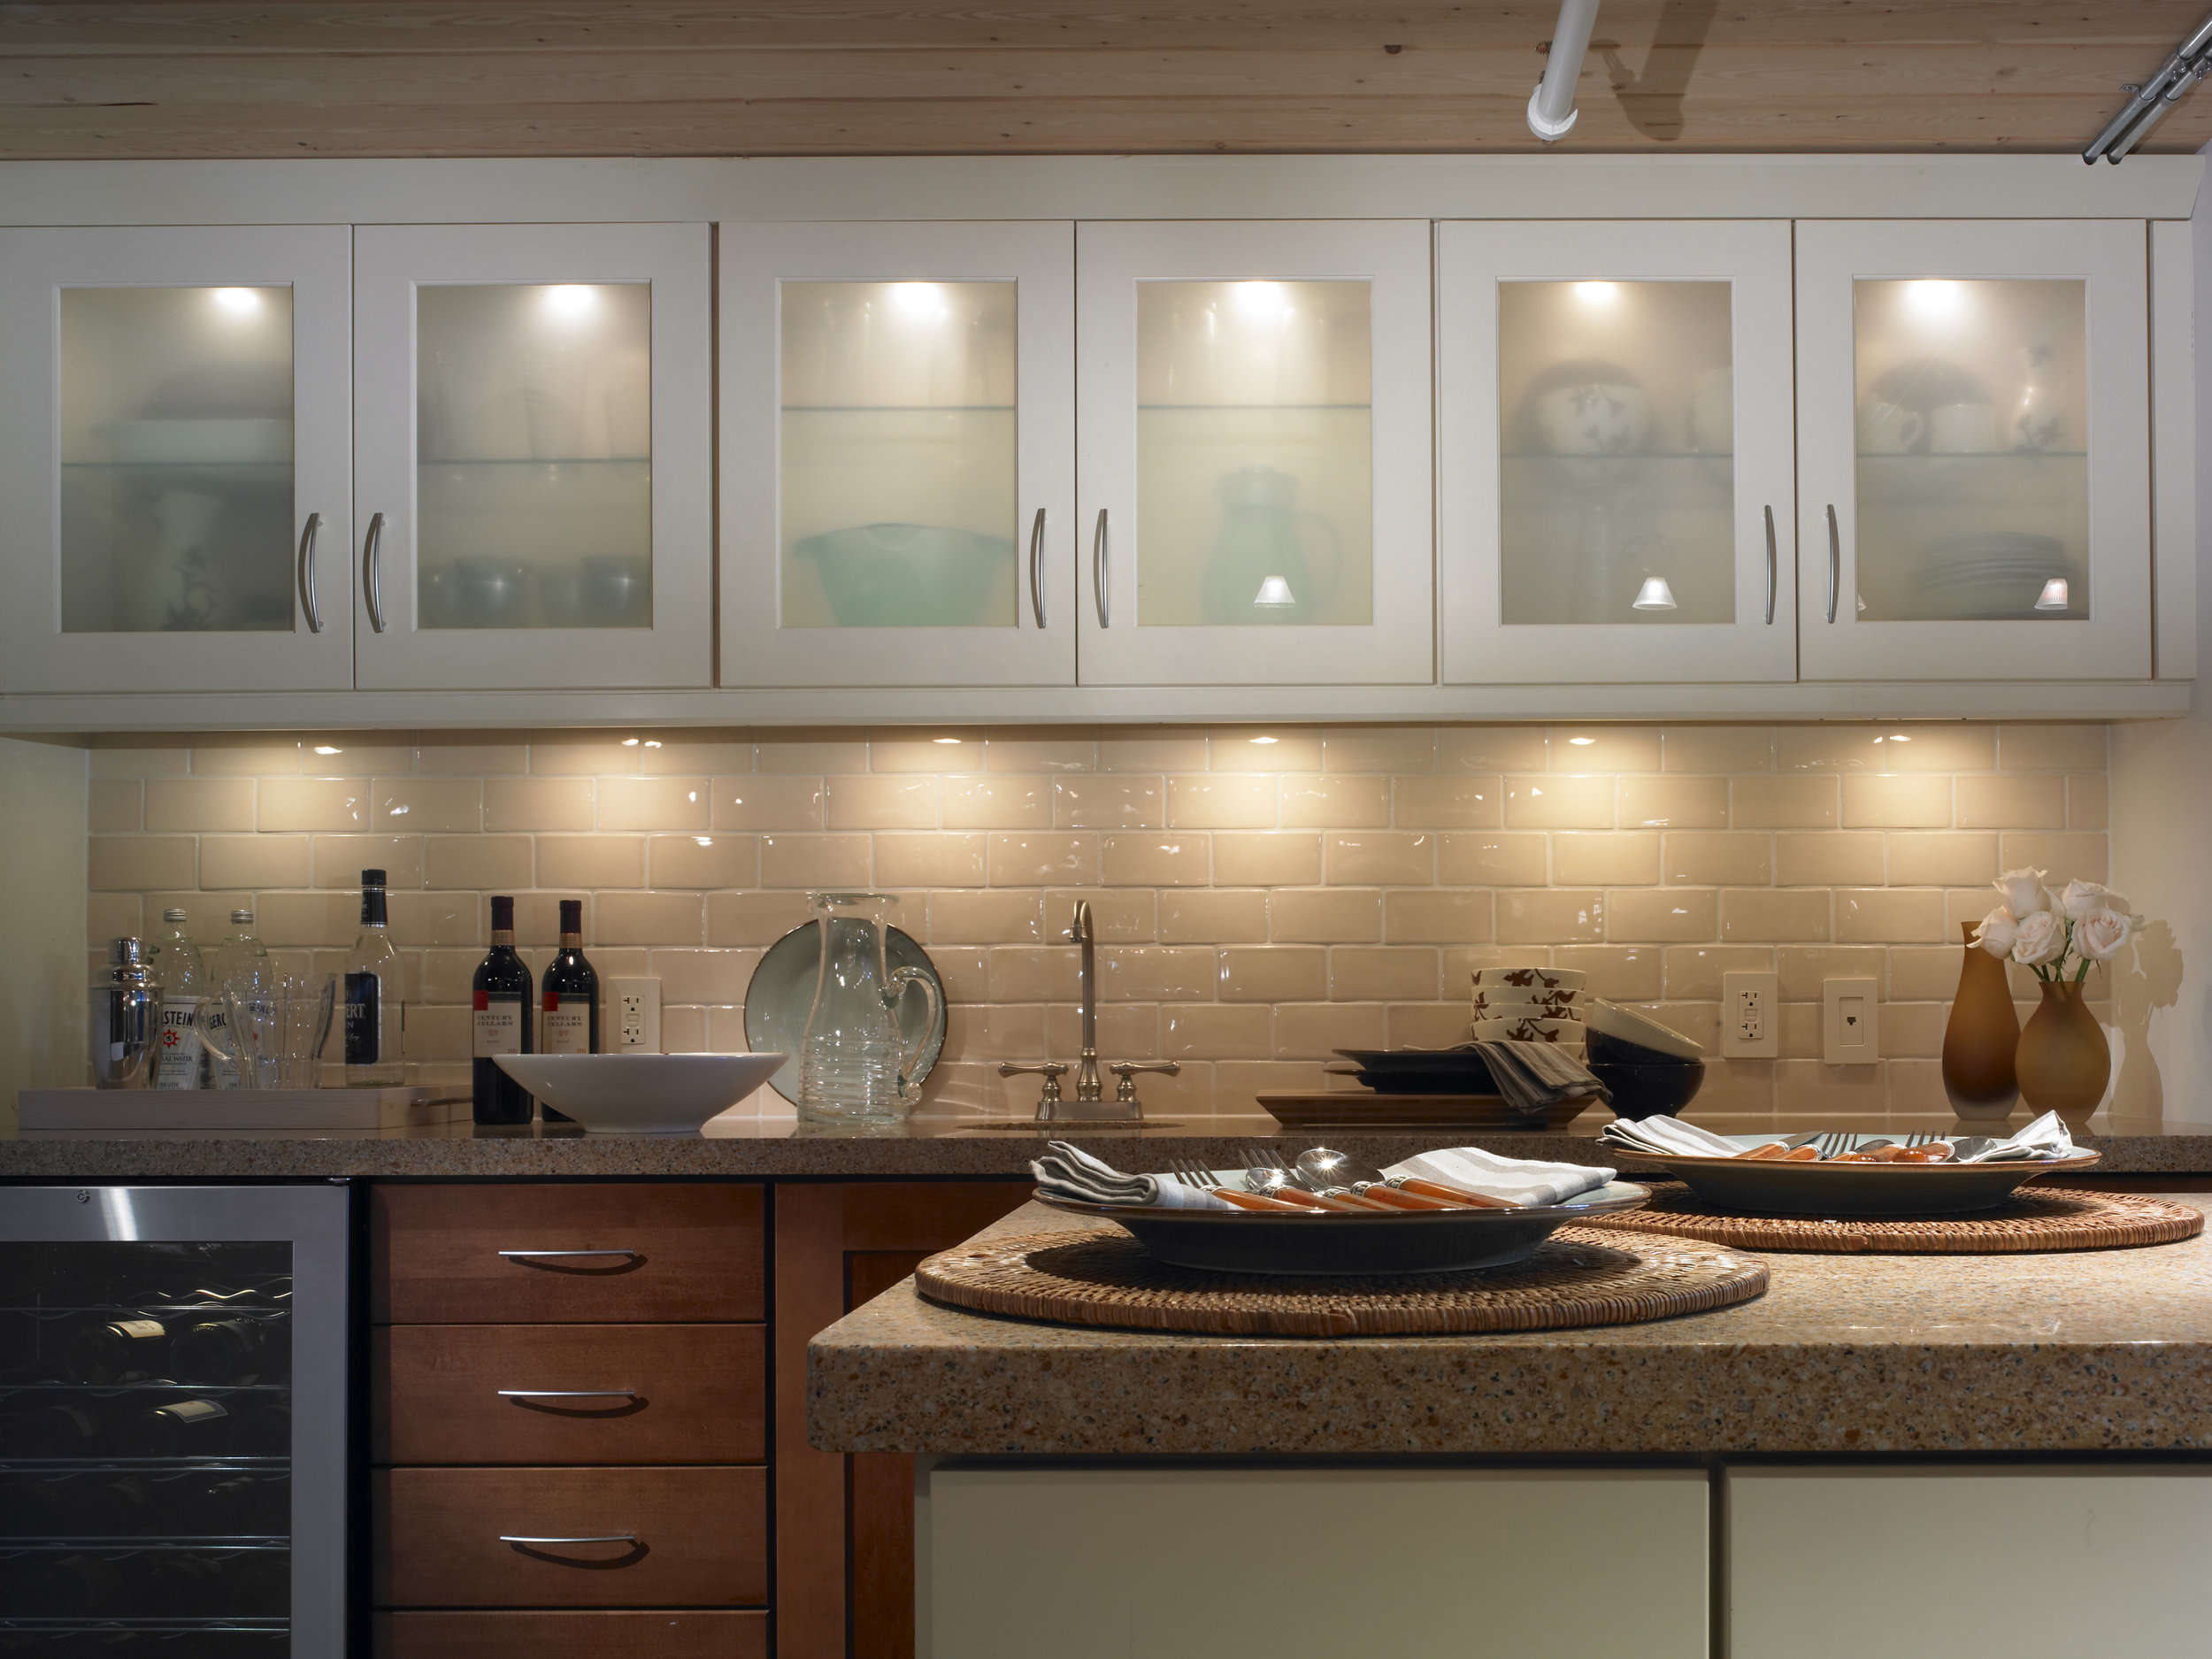 Control One Or All Of These Kitchen Lights Easily -